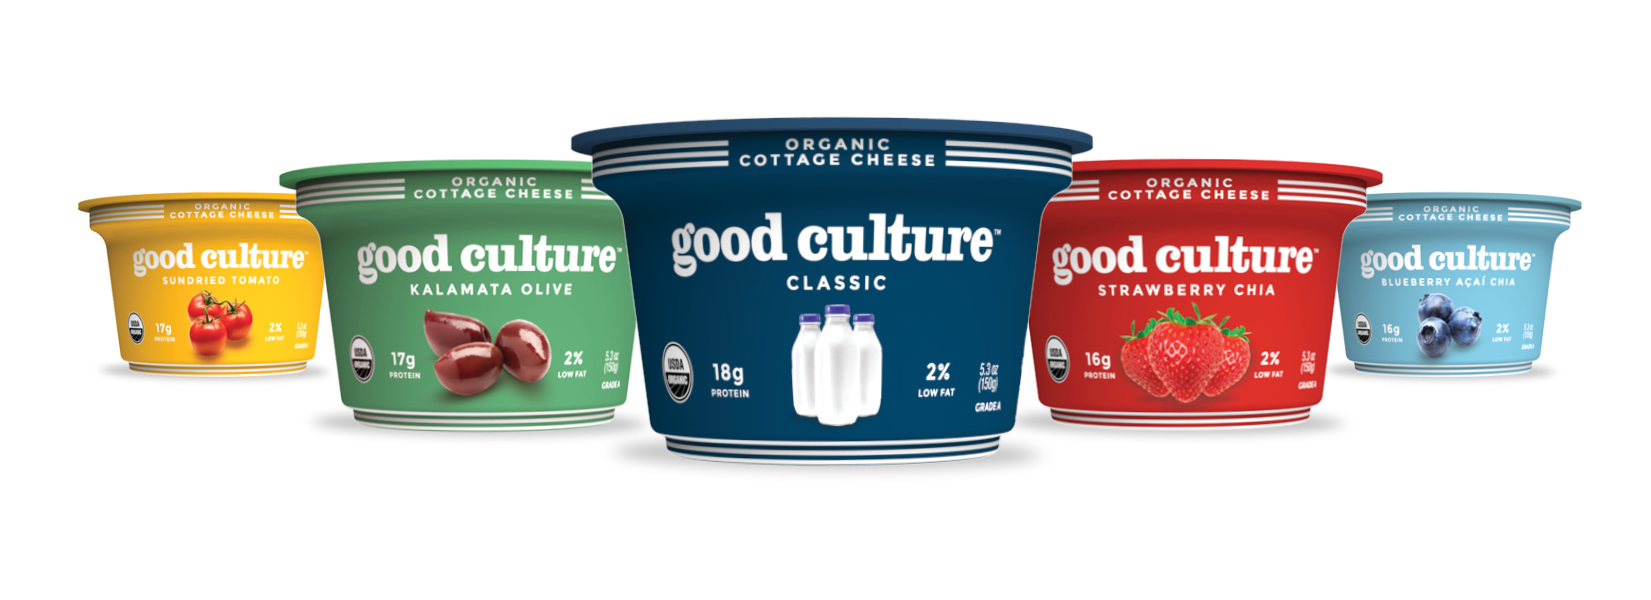 Good Culture Launches Cottage Cheese But Better